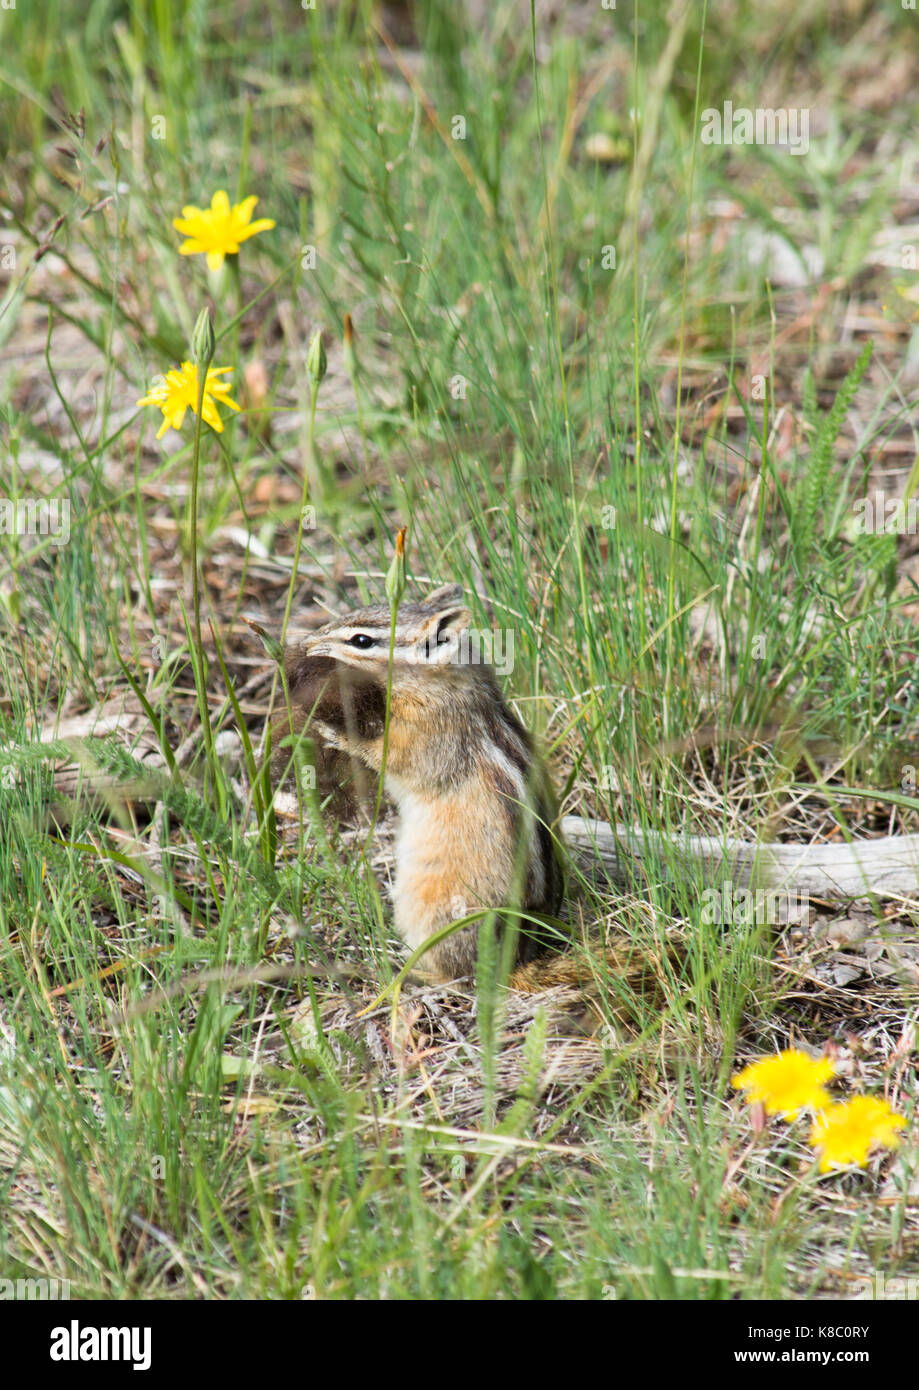 Chipmunk sitting upright with bison fur in its mouth. He is sitting among grass and flowers. - Stock Image